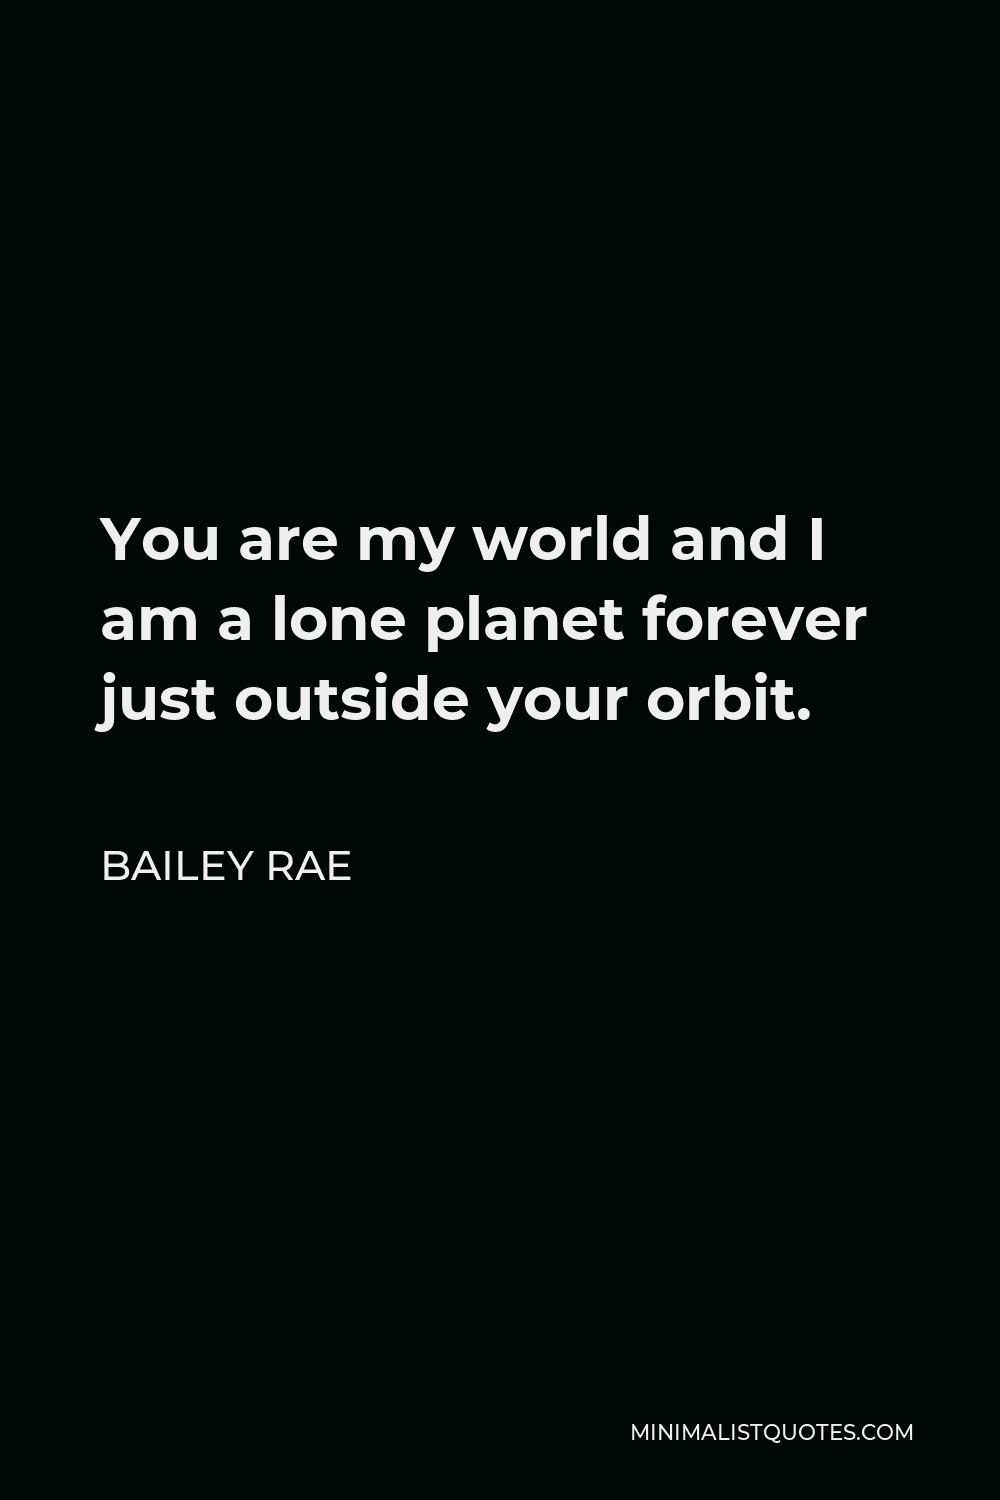 Bailey Rae Quote - You are my world and I am a lone planet forever just outside your orbit.